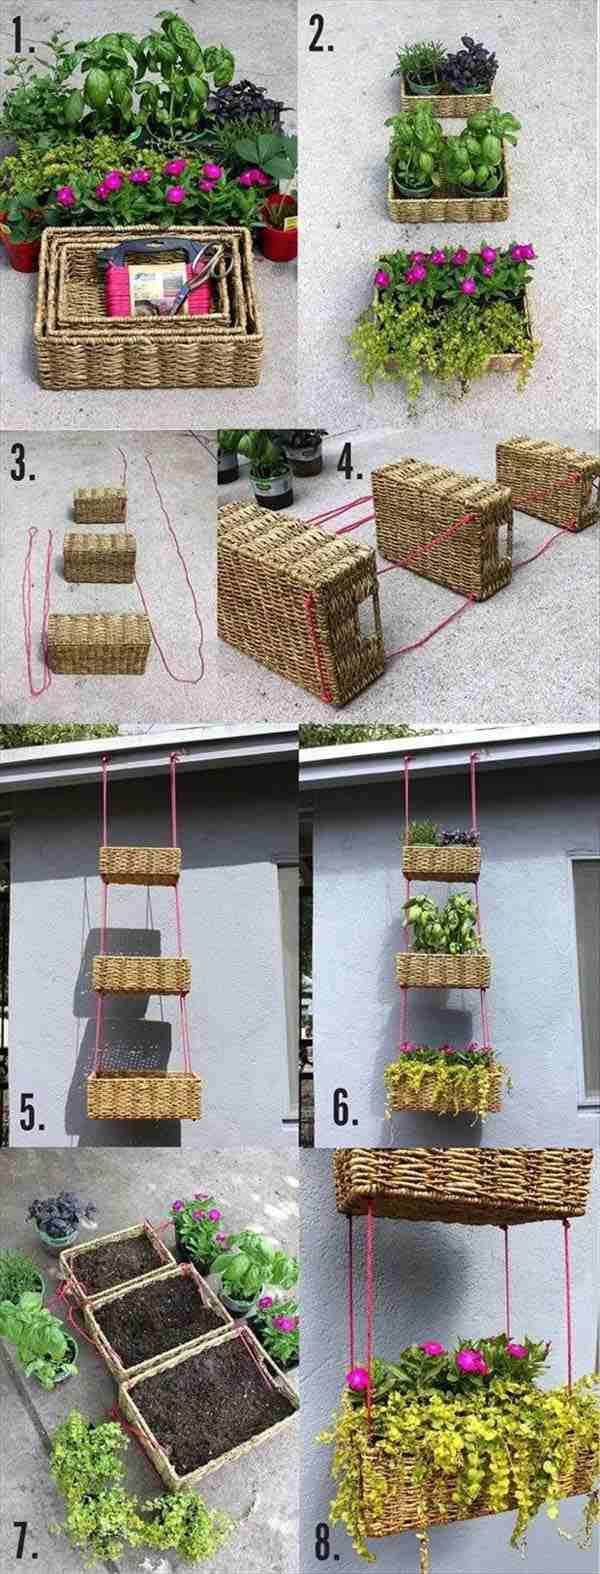 Garden Decoration Ideas Homemade Decoration Home Plans Ideas Picture